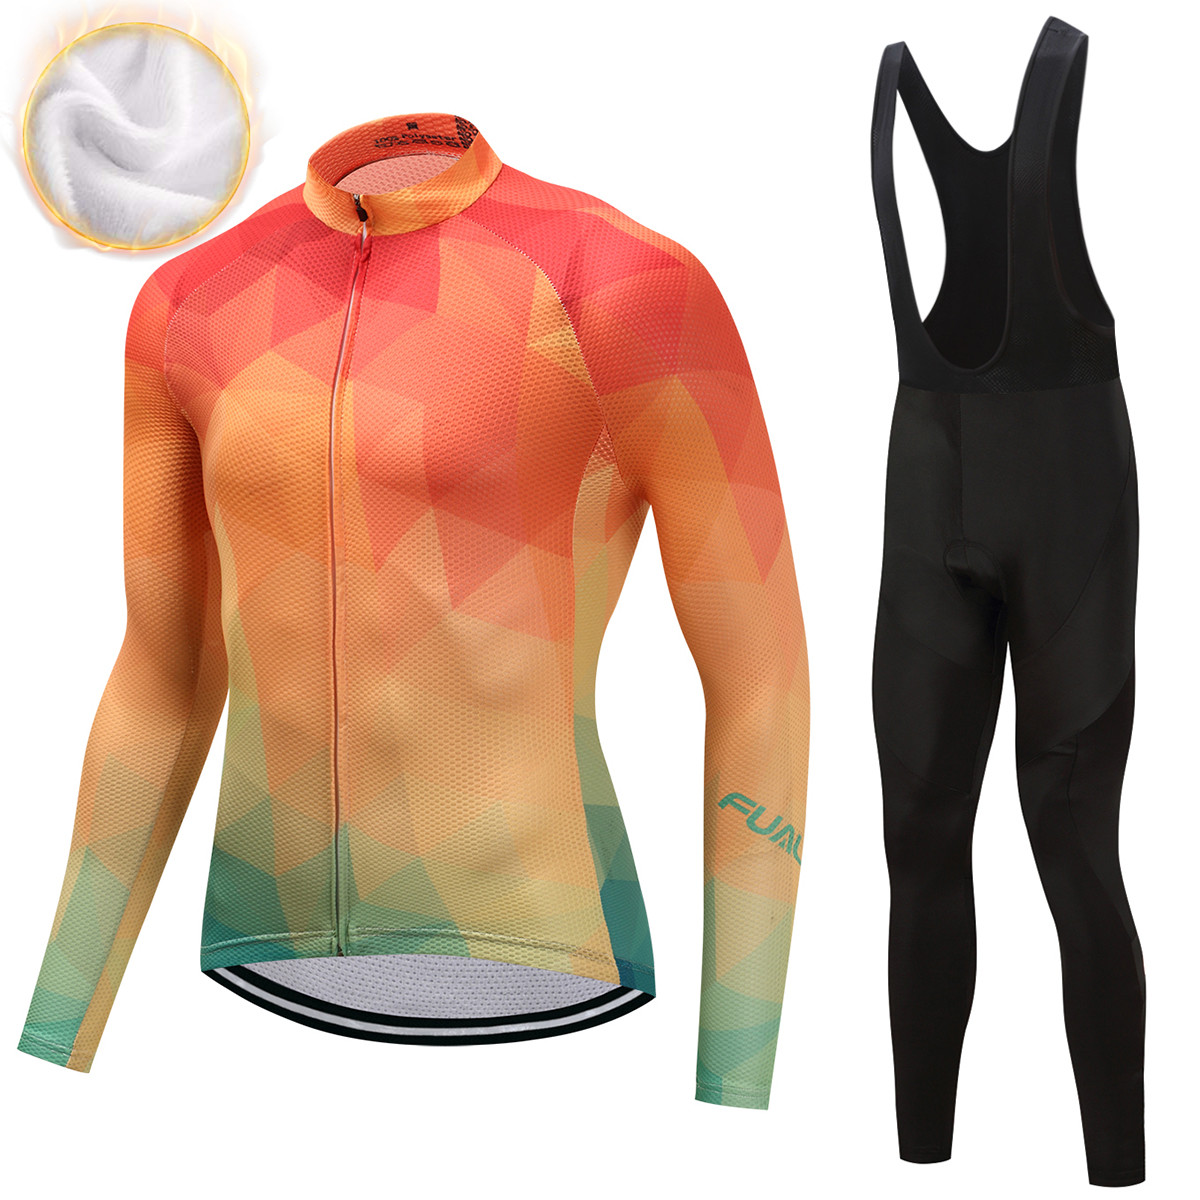 FUALRNYPro Flier Winter Thermal Fleece Cycling Jersey Set 2018 Long Sleeve Bicycle Clothing MTB Bike Wear Maillot Ropa Ciclismo